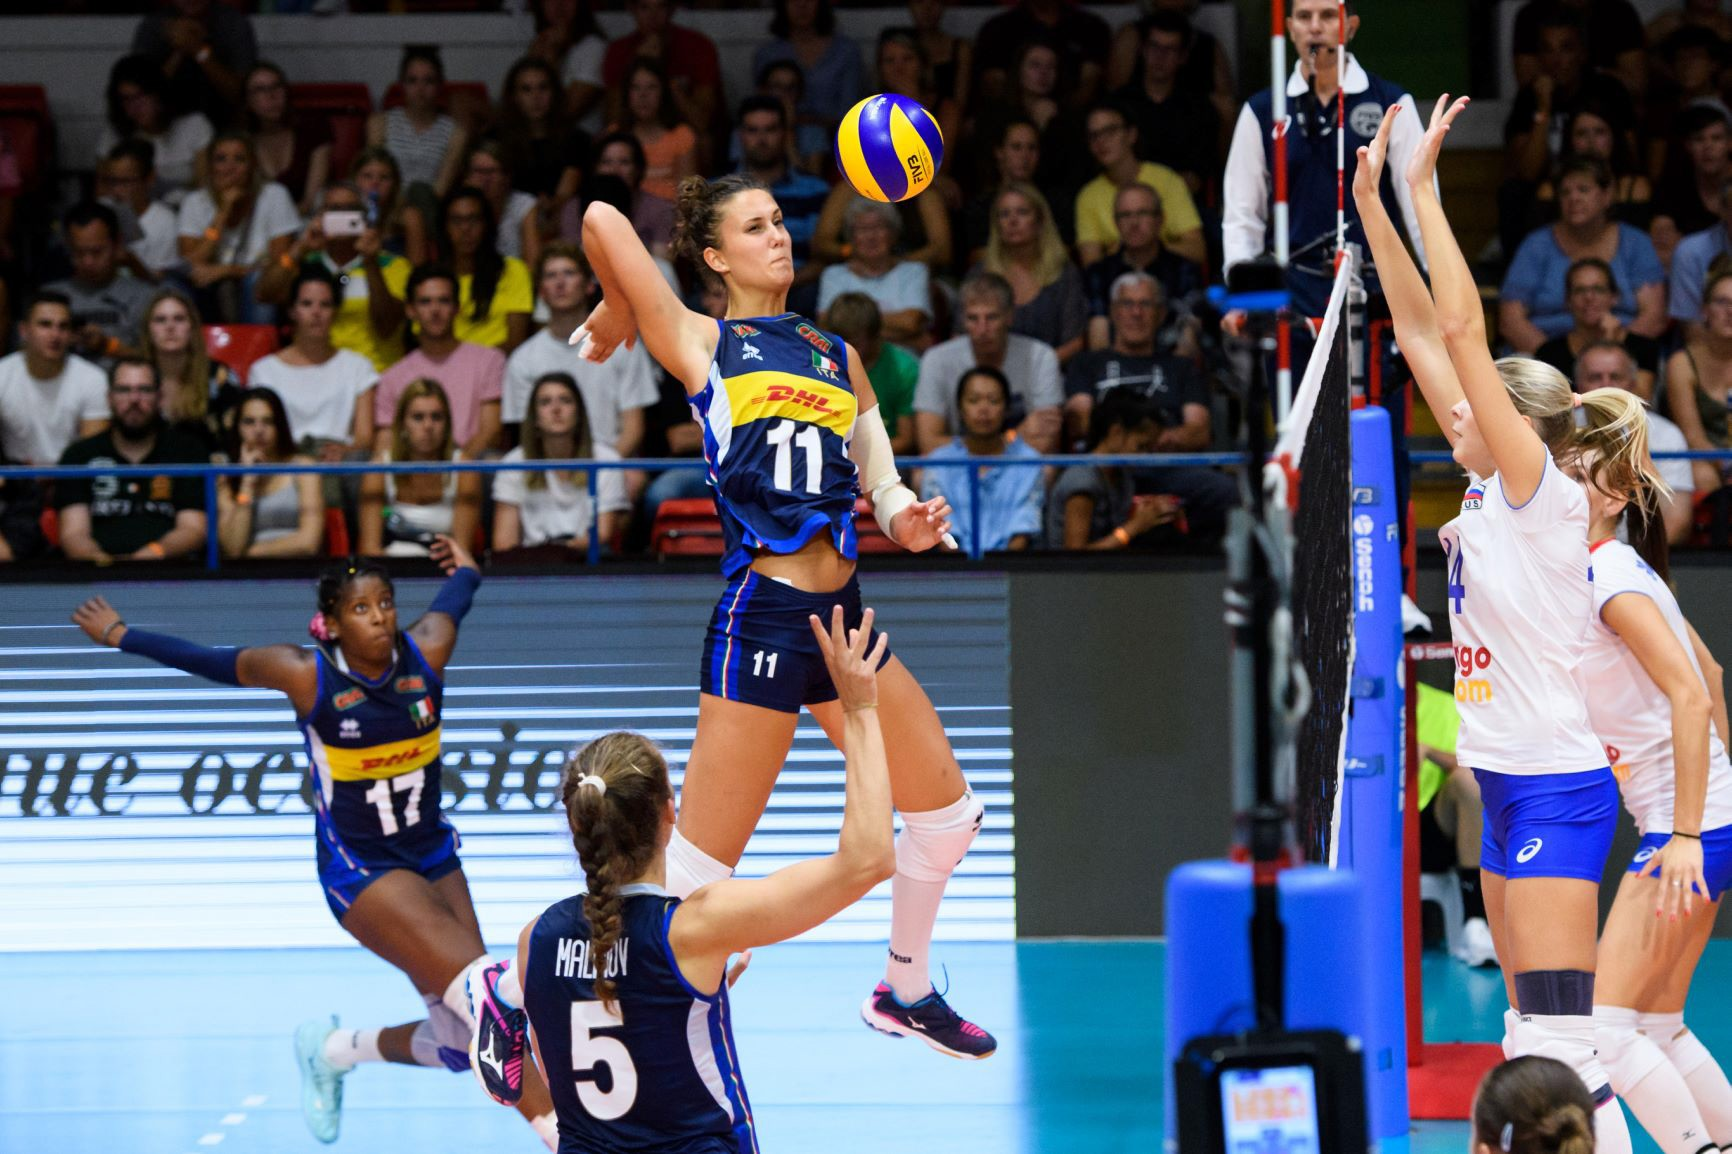 The Italian women's team pull off a wonderful victory in the Montreux Volley Masters